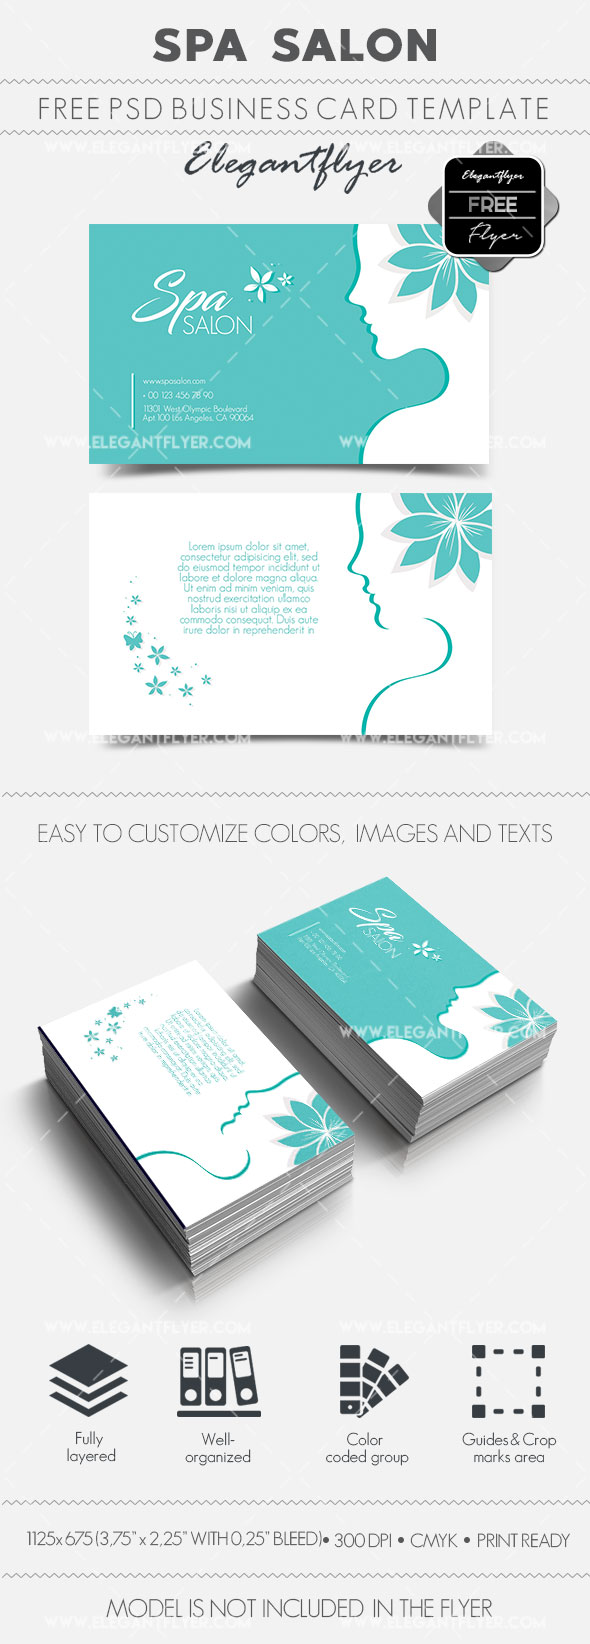 spa salon � free business card templates psd � by elegantflyer